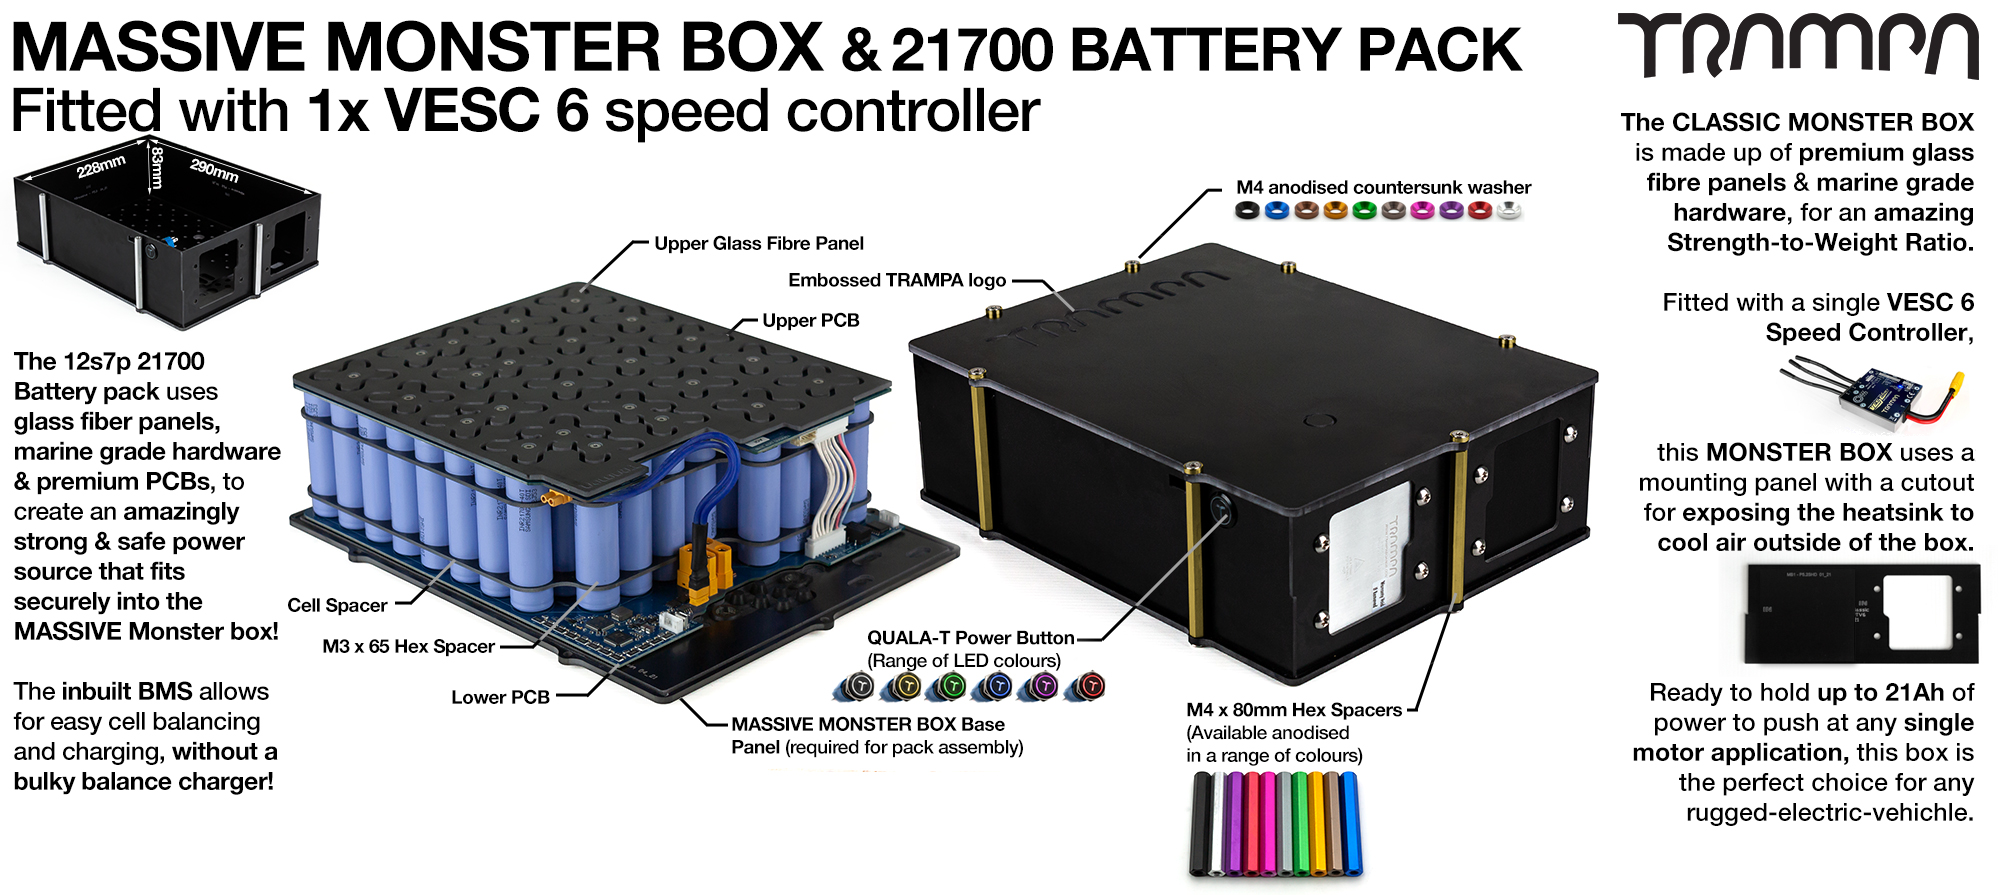 21700 MASSIVE MONSTER Box with 21700 PCB Pack with 1x VESC 6 & 84x 21700 cells 12s7p = 35Ah - Specifically made to work in conjunction with TRAMPA's Electric Decks but can be adapted to fit anything - UK Customers only